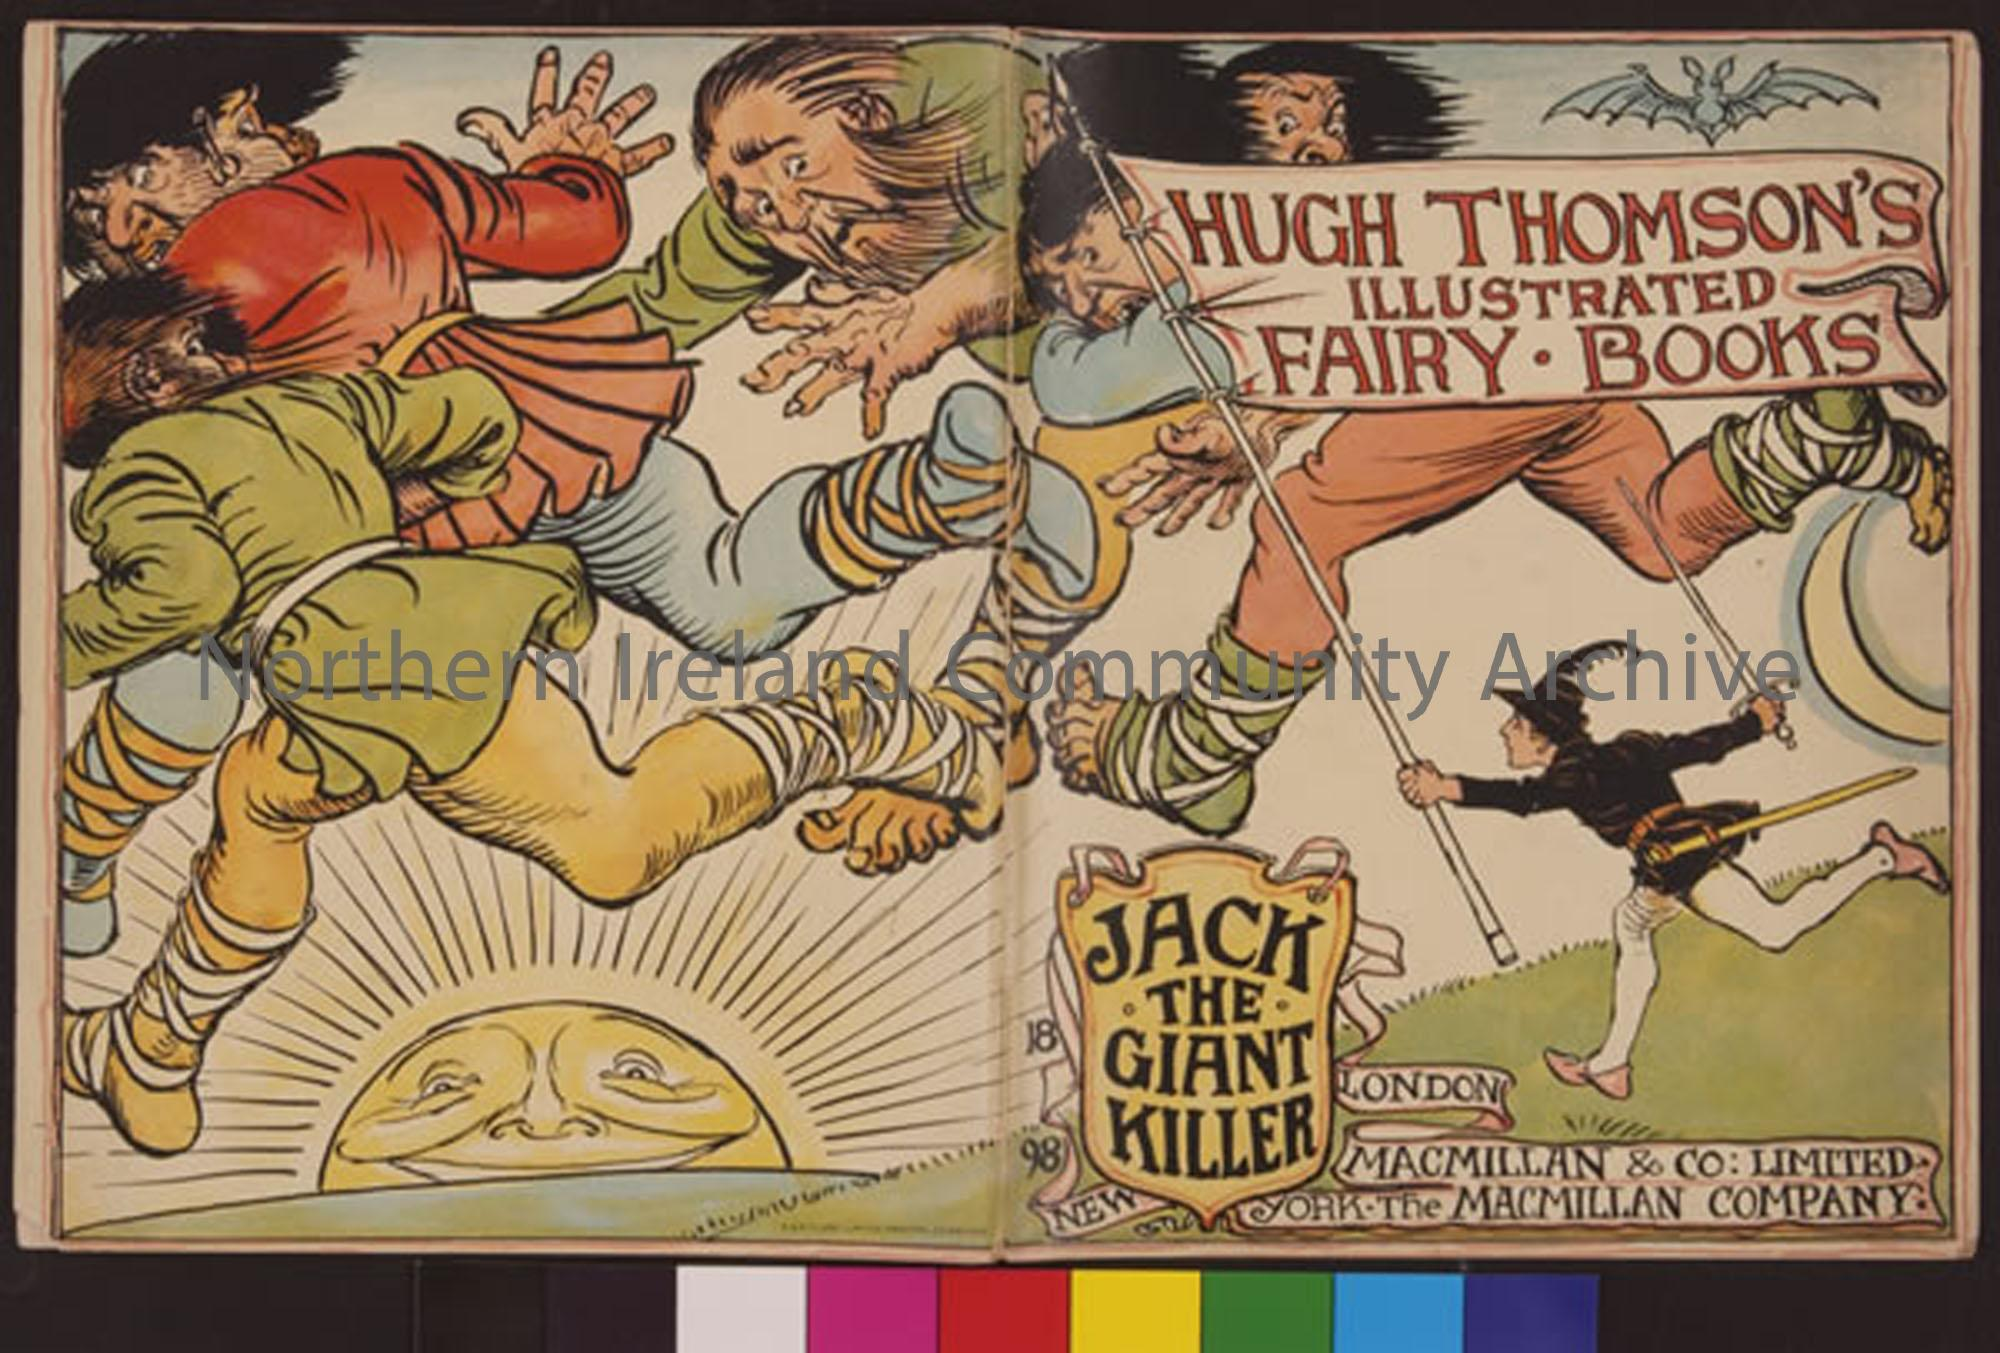 Jack the Giant Killer, Fairy Book, Illustrated by Hugh Thomson  (2522)